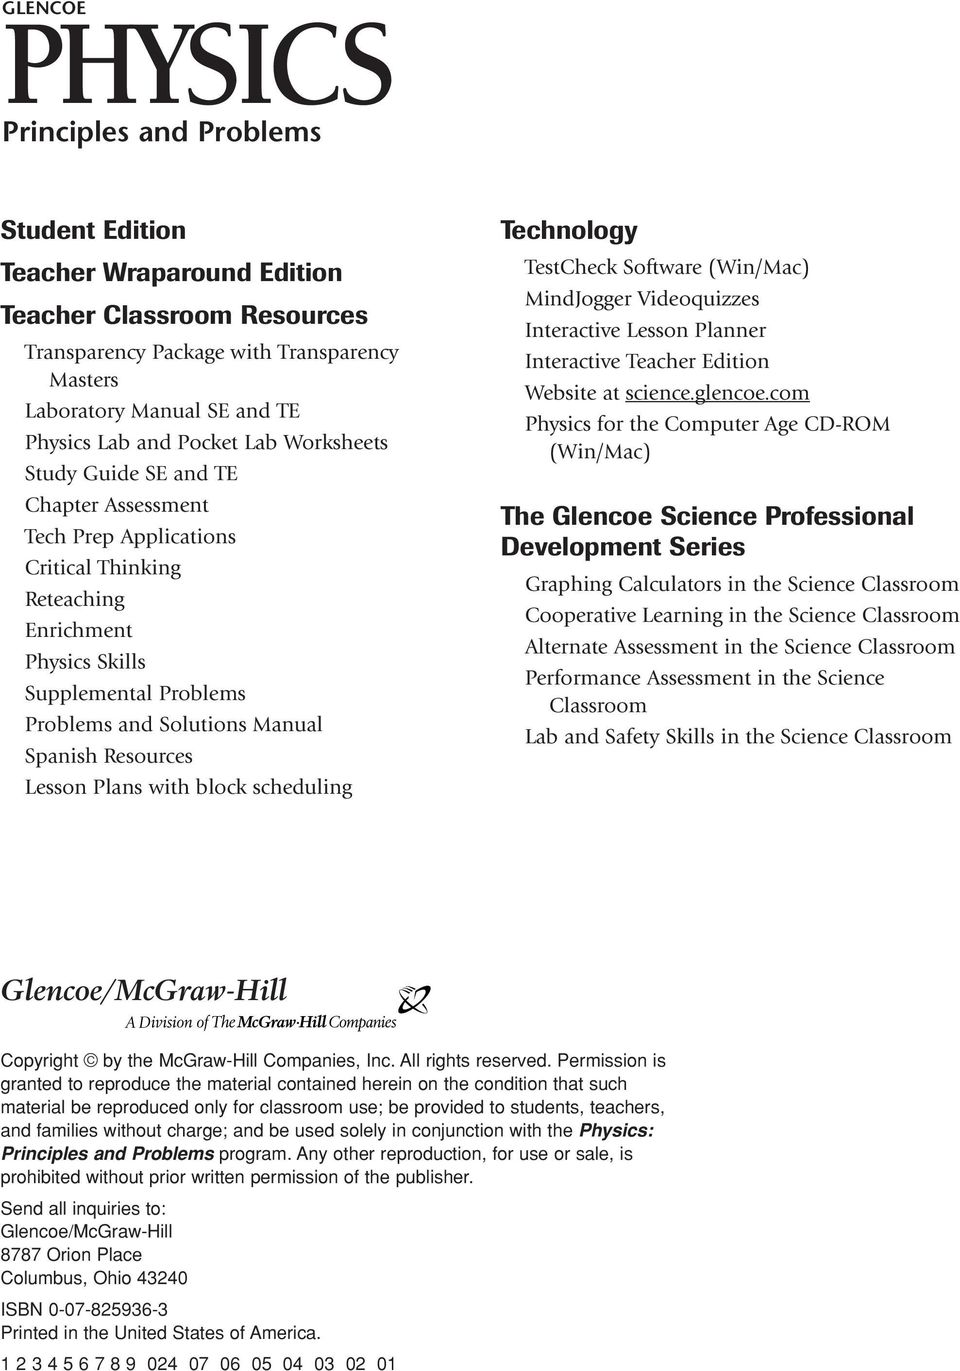 glencoe essay writer Classzone glencoe essay writer book finder rich cohen (born july 30, 1968) software purchase proposal template is an american non-fiction writer editor.